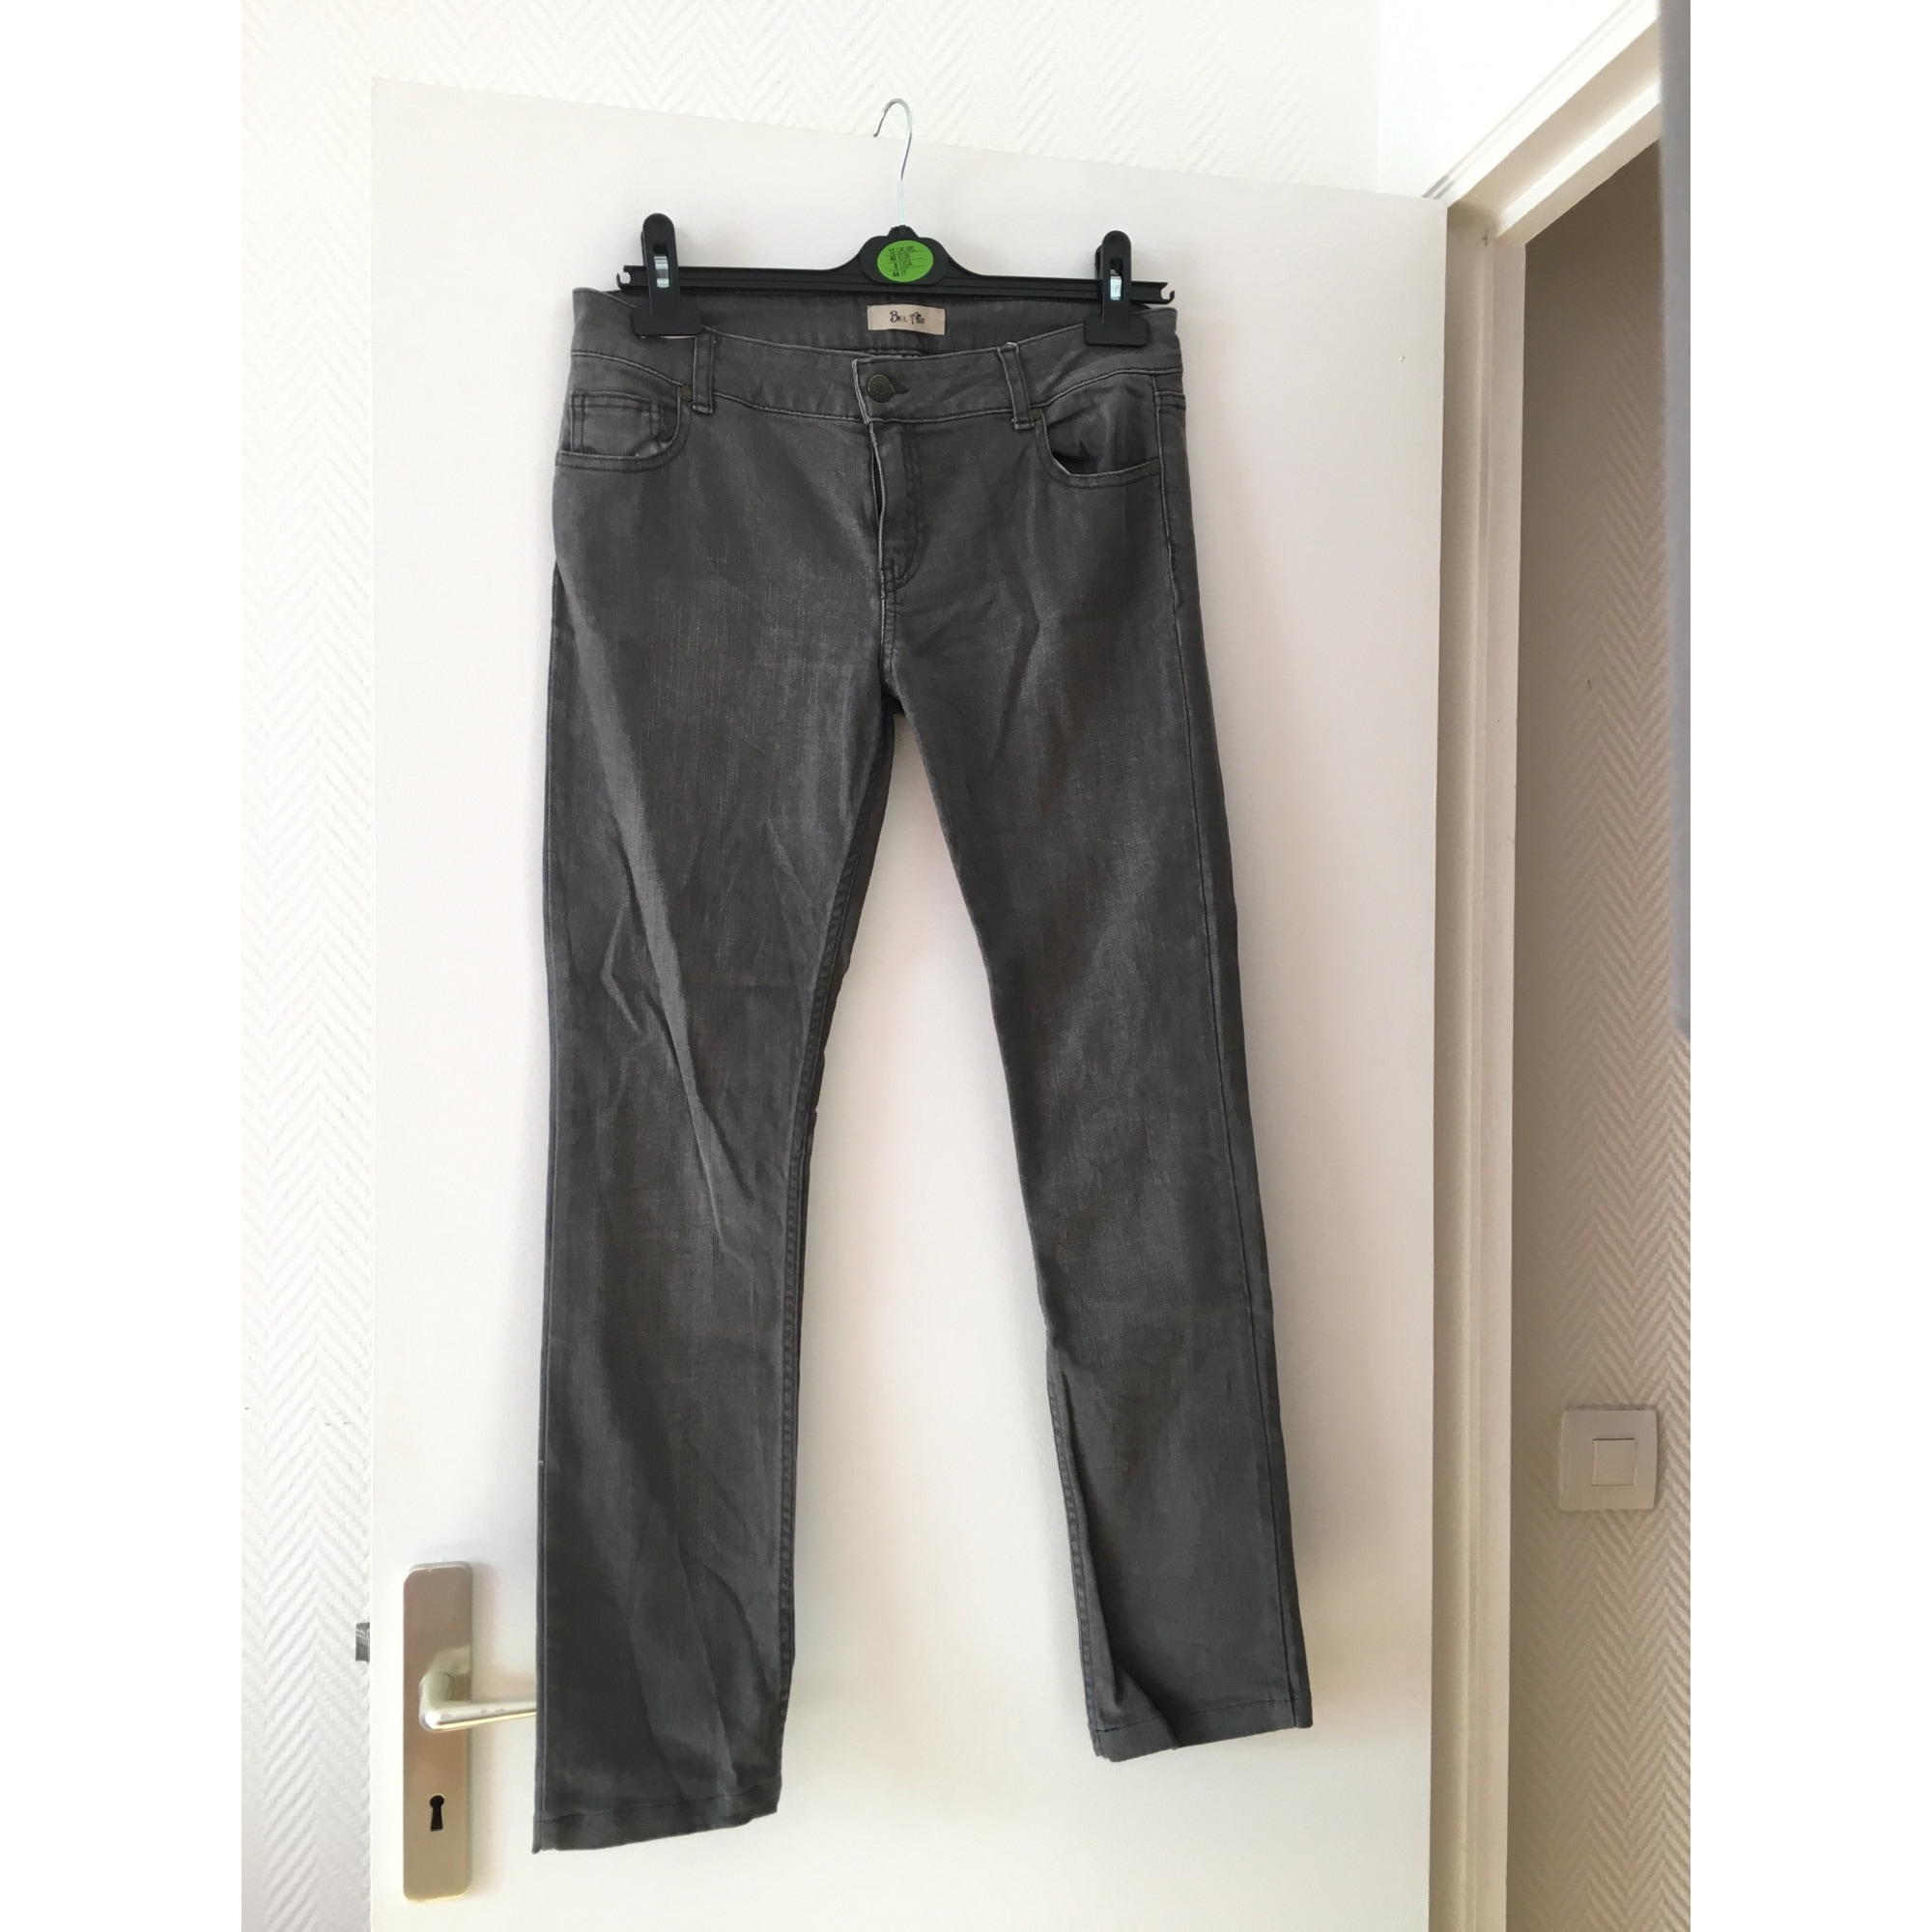 Jeans droit BEL AIR Gris, anthracite